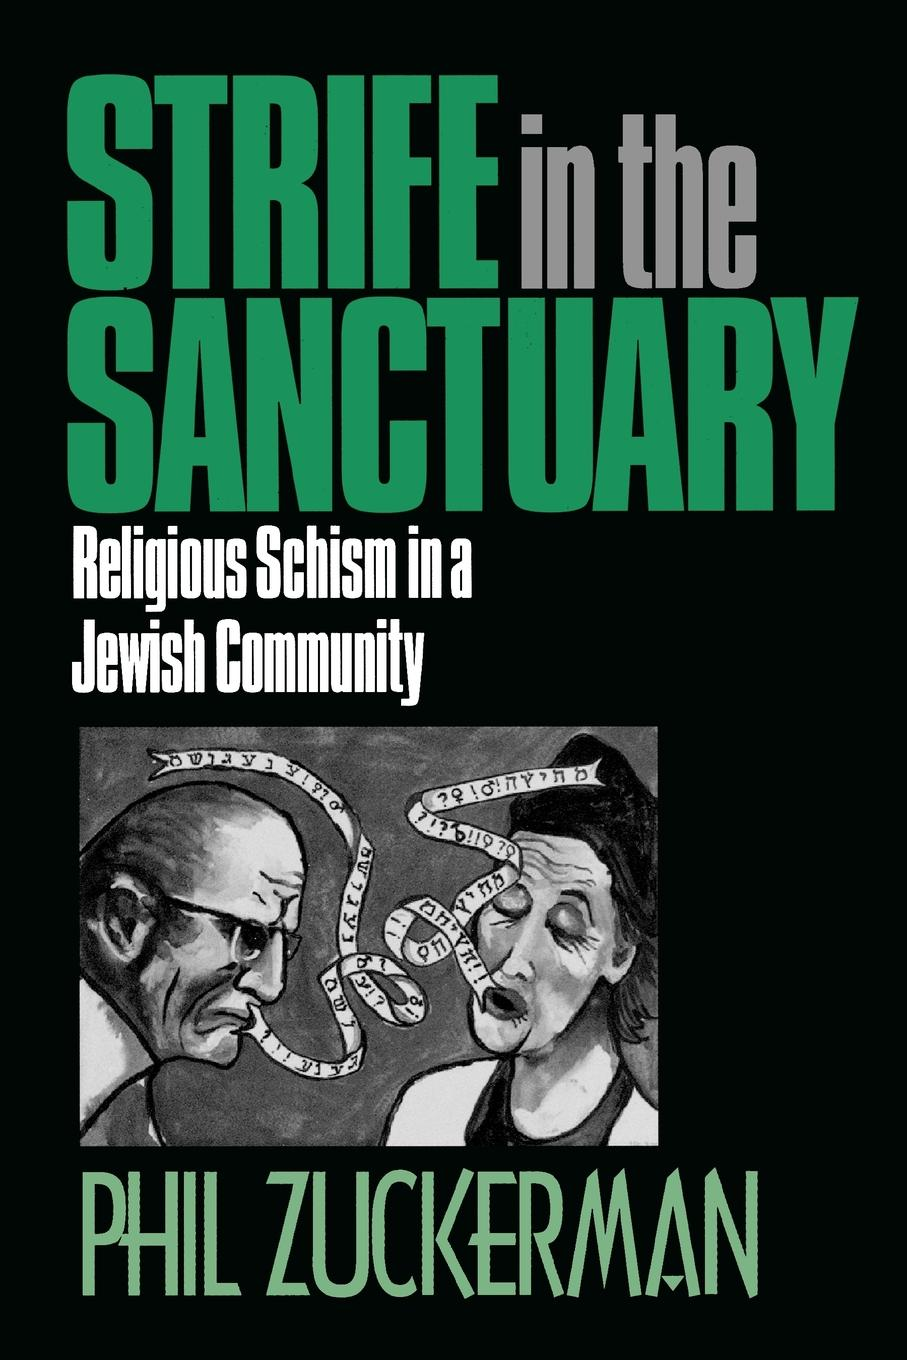 Strife In the Sanctuary: Religious Schism in a Jewish Community